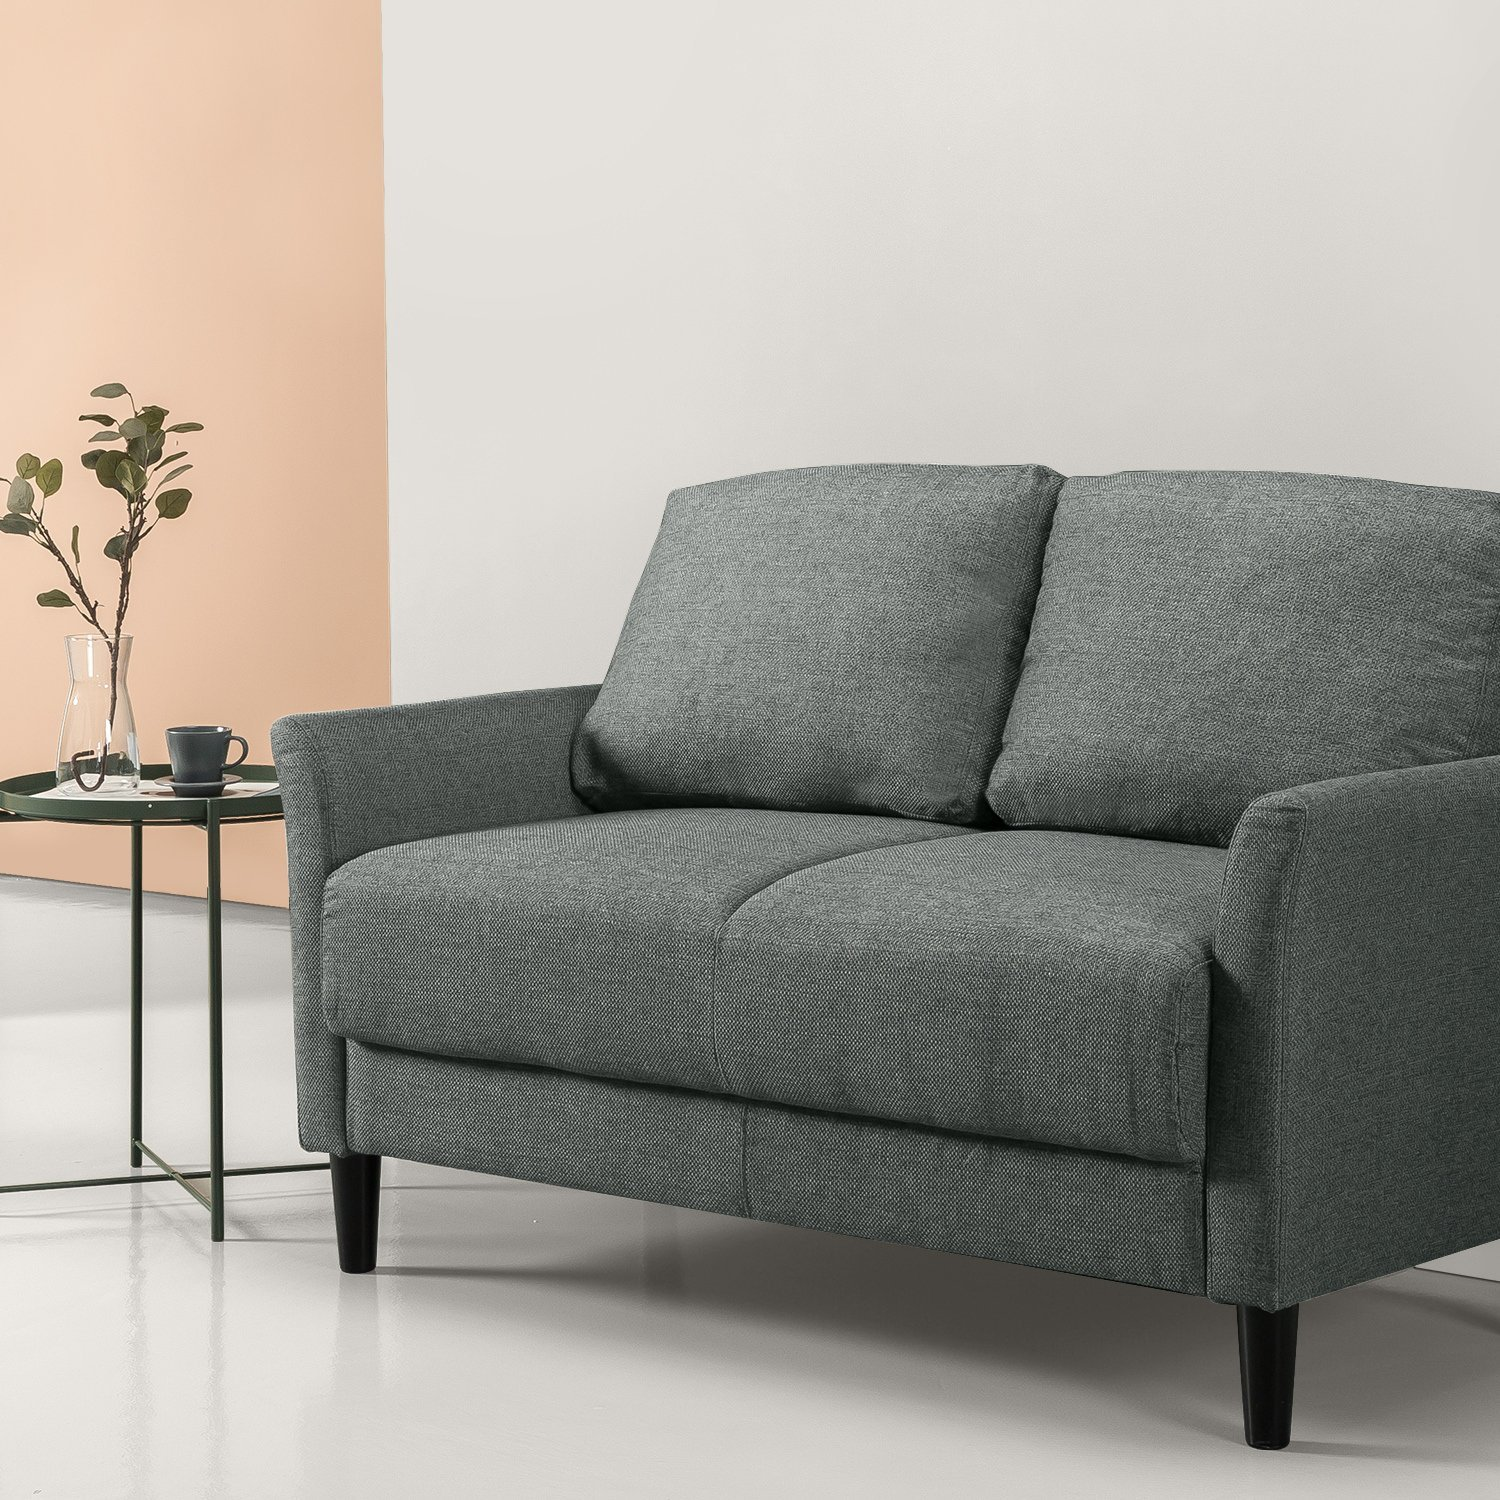 Zinus Jackie Classic Upholstered 53.5 Inch Sofa, Soft Grey ...